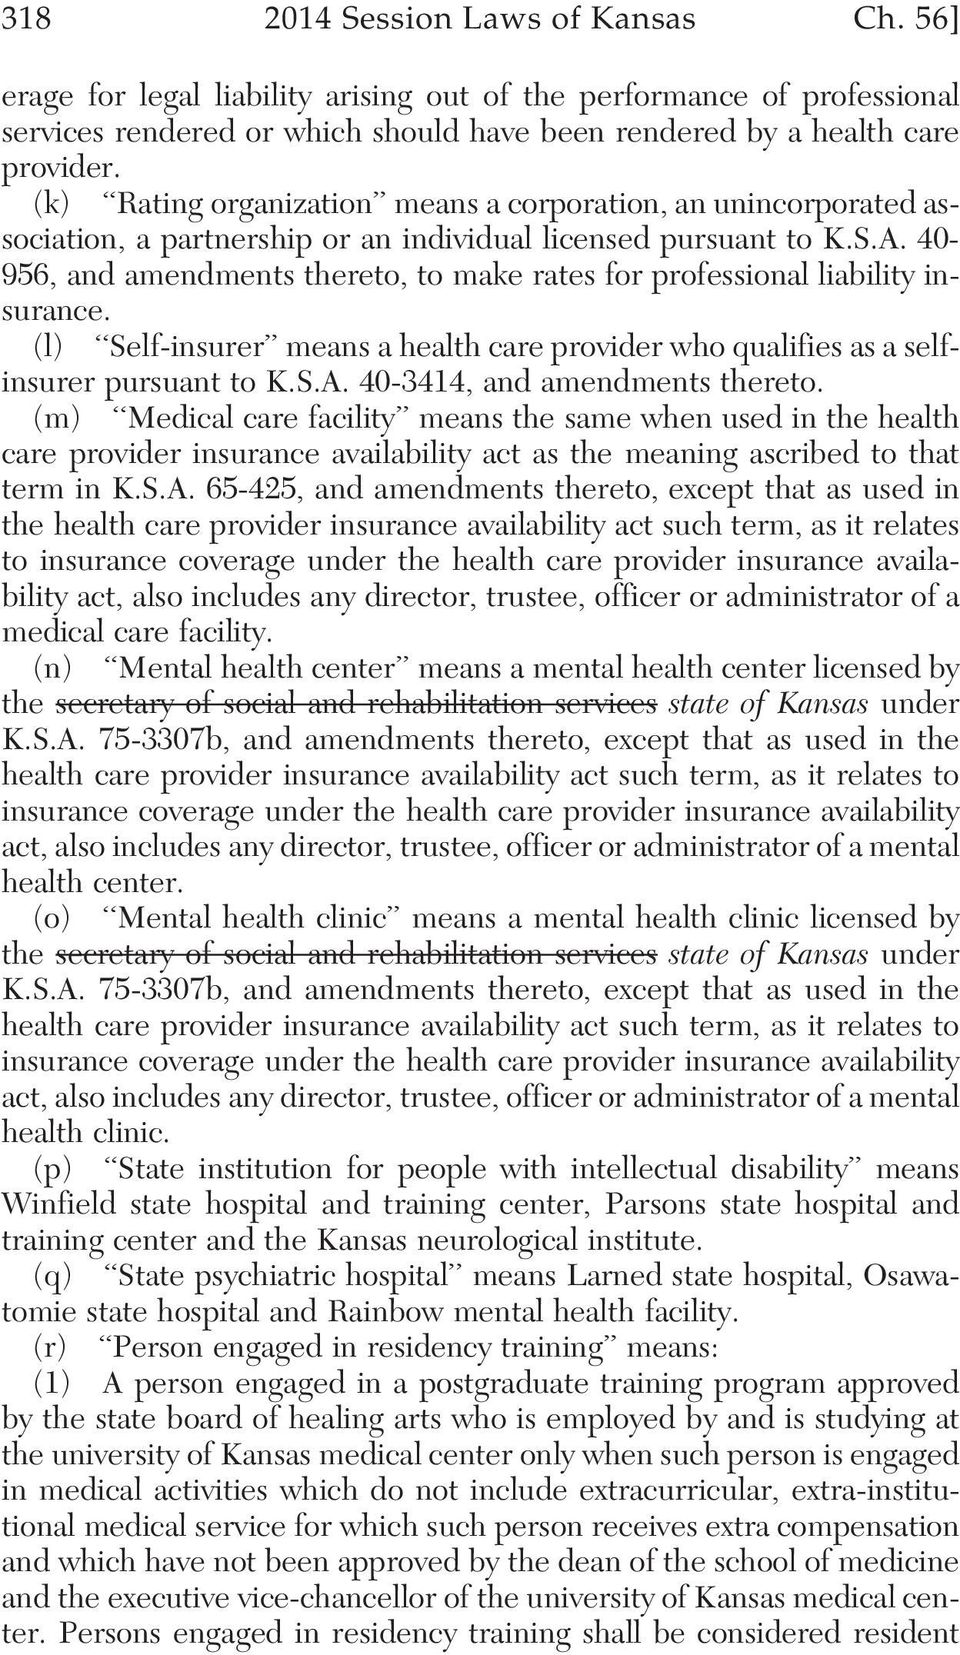 40-956, and amendments thereto, to make rates for professional liability insurance. (l) Self-insurer means a health care provider who qualifies as a selfinsurer pursuant to K.S.A.